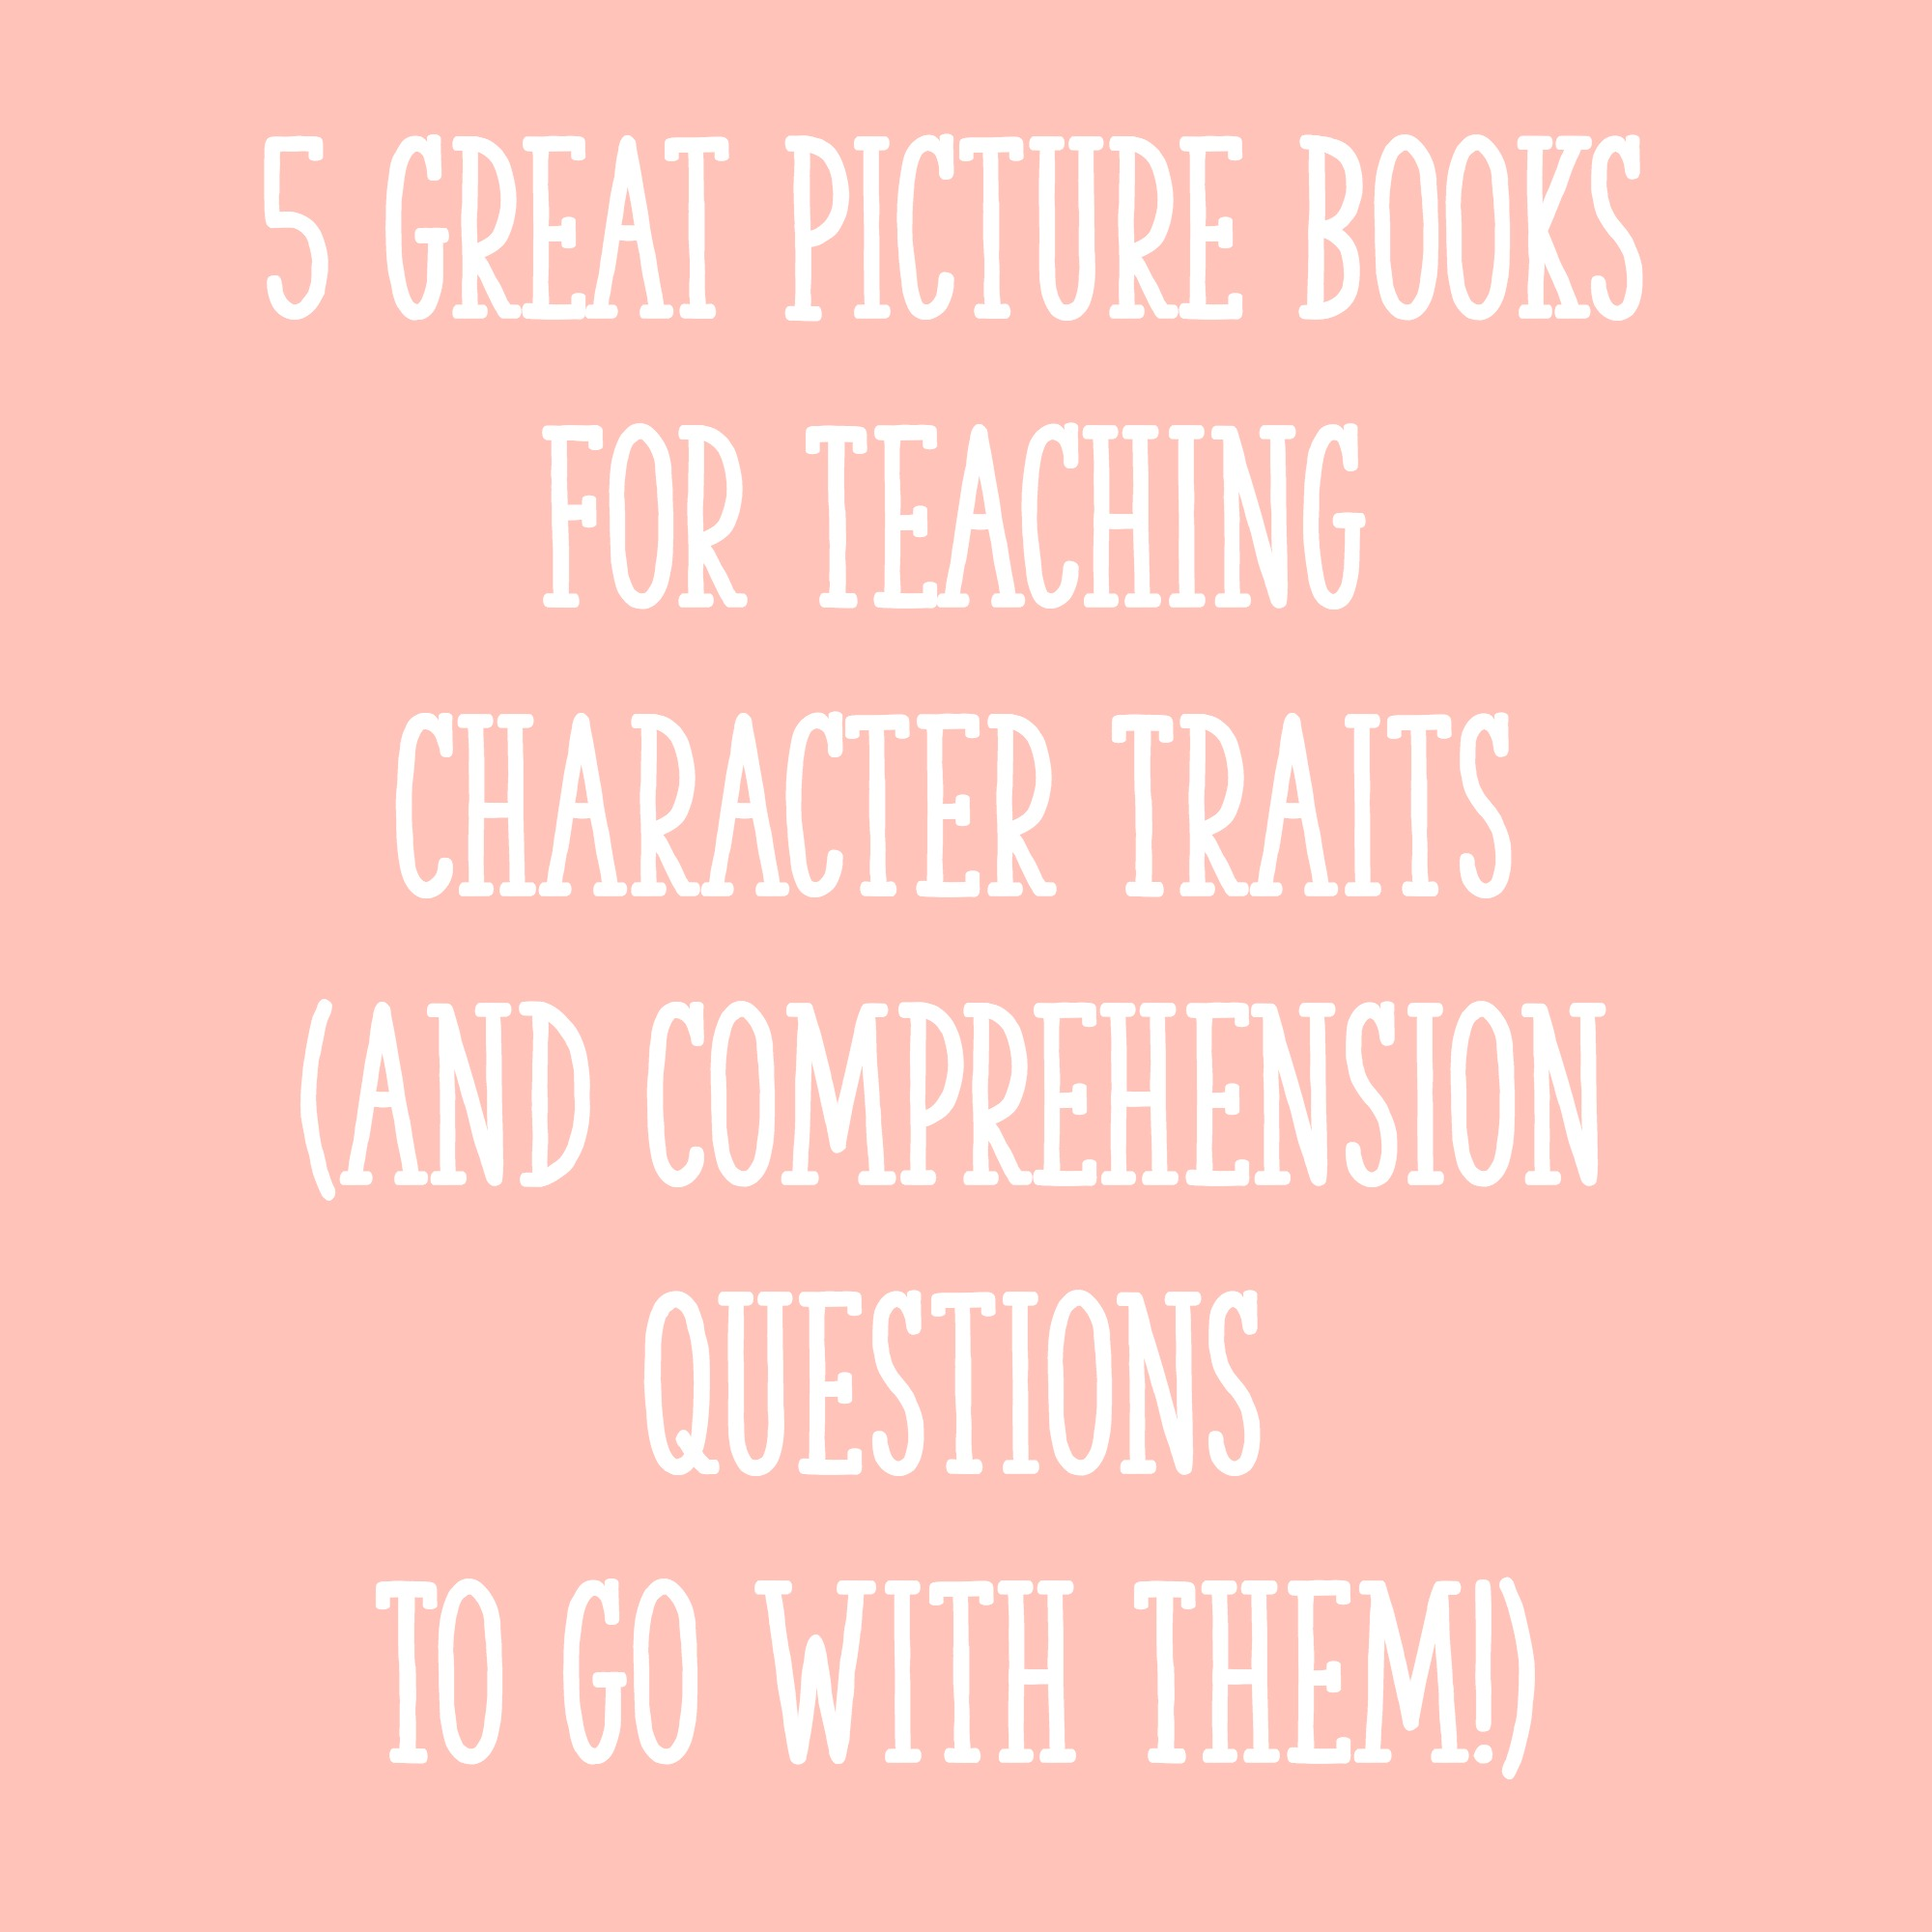 5 Great Picture Books For Teaching Character Traits (and